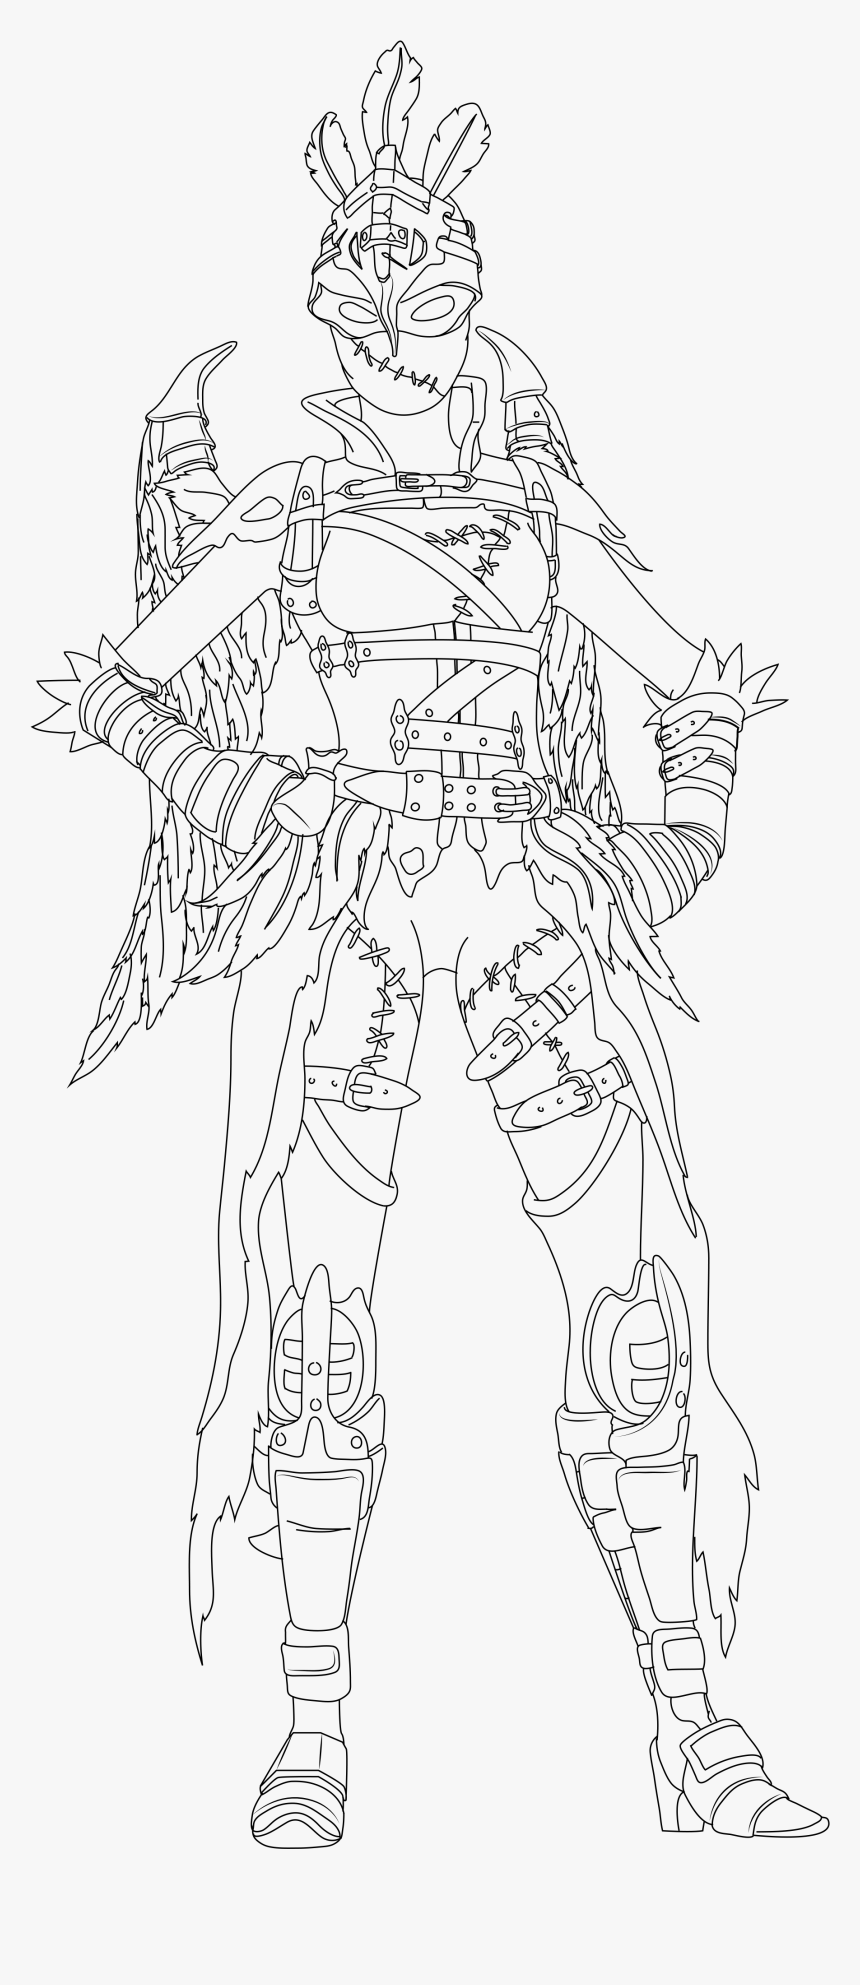 Fortnite Coloring Pages Ravage, HD Png Download, Free Download